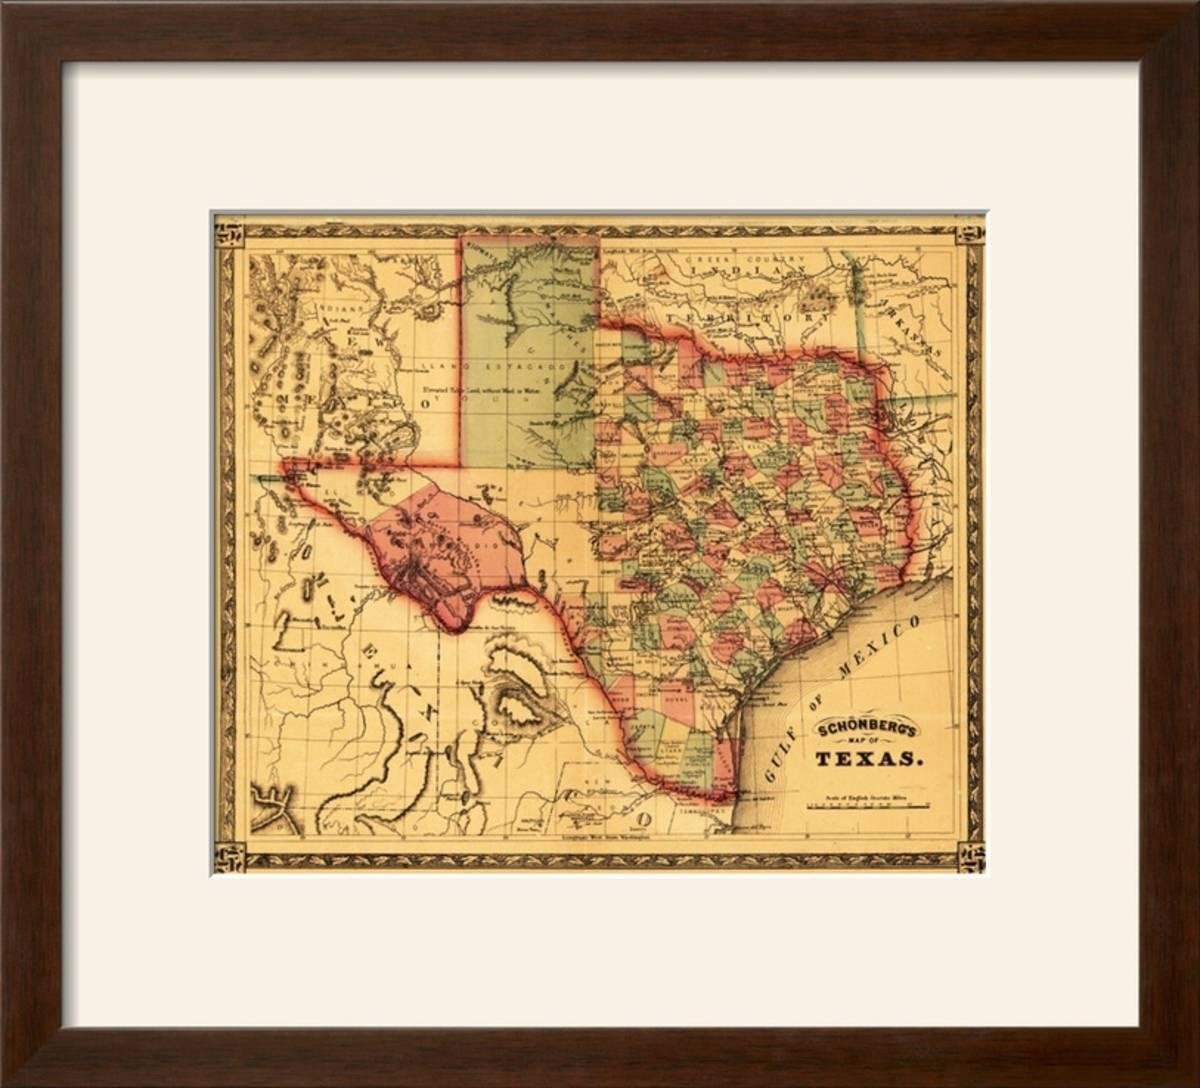 Charlton Home 'texas - Panoramic Map' Framed Graphic Art Print | Wayfair - Texas Map Framed Art